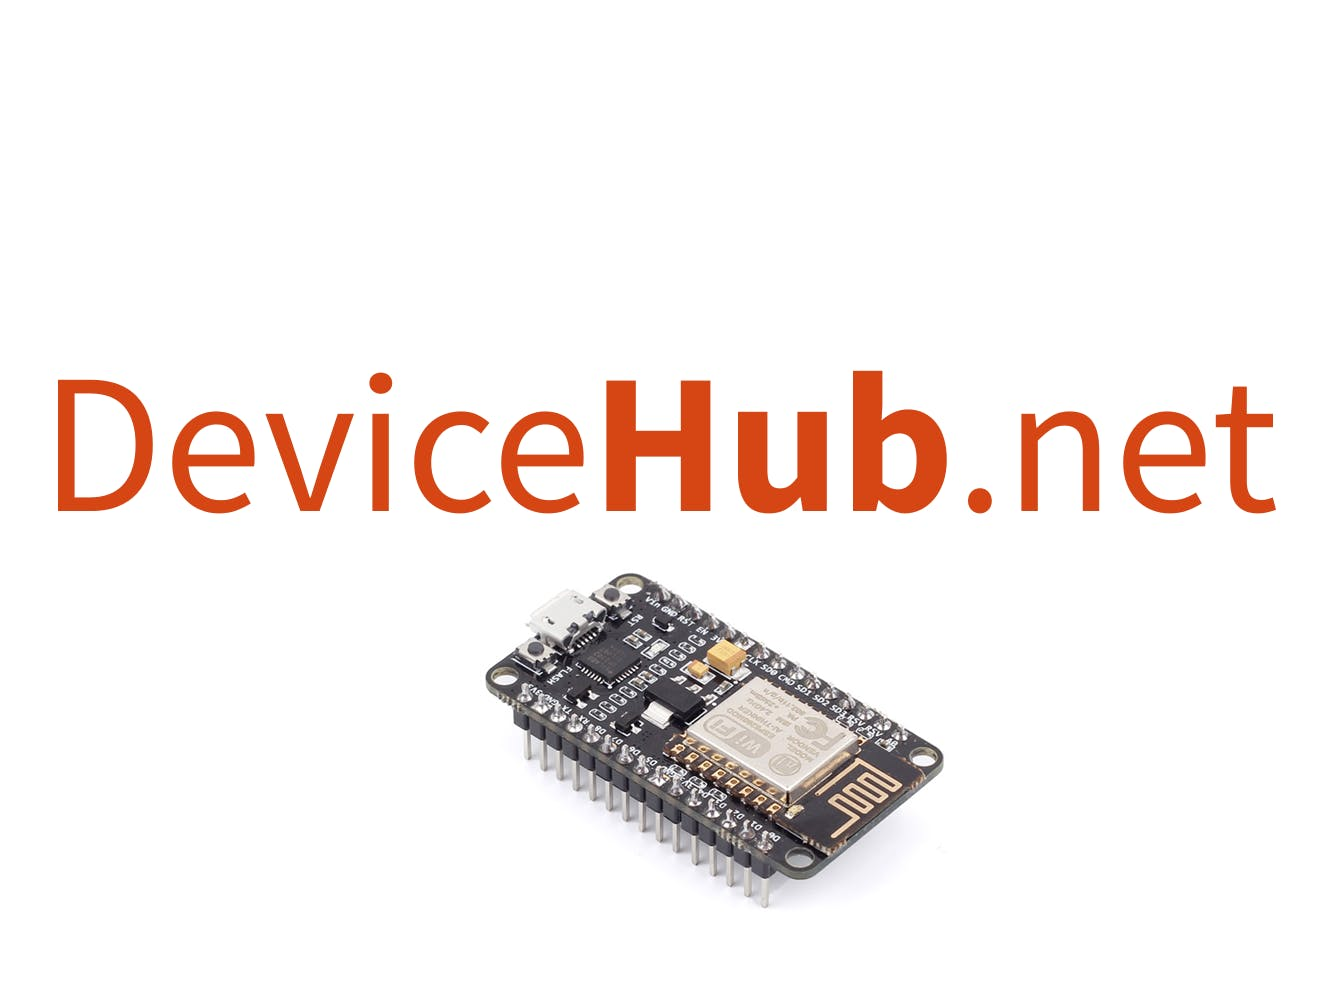 Using NodeMCU Board to Send Data to DeviceHub IoT Platform